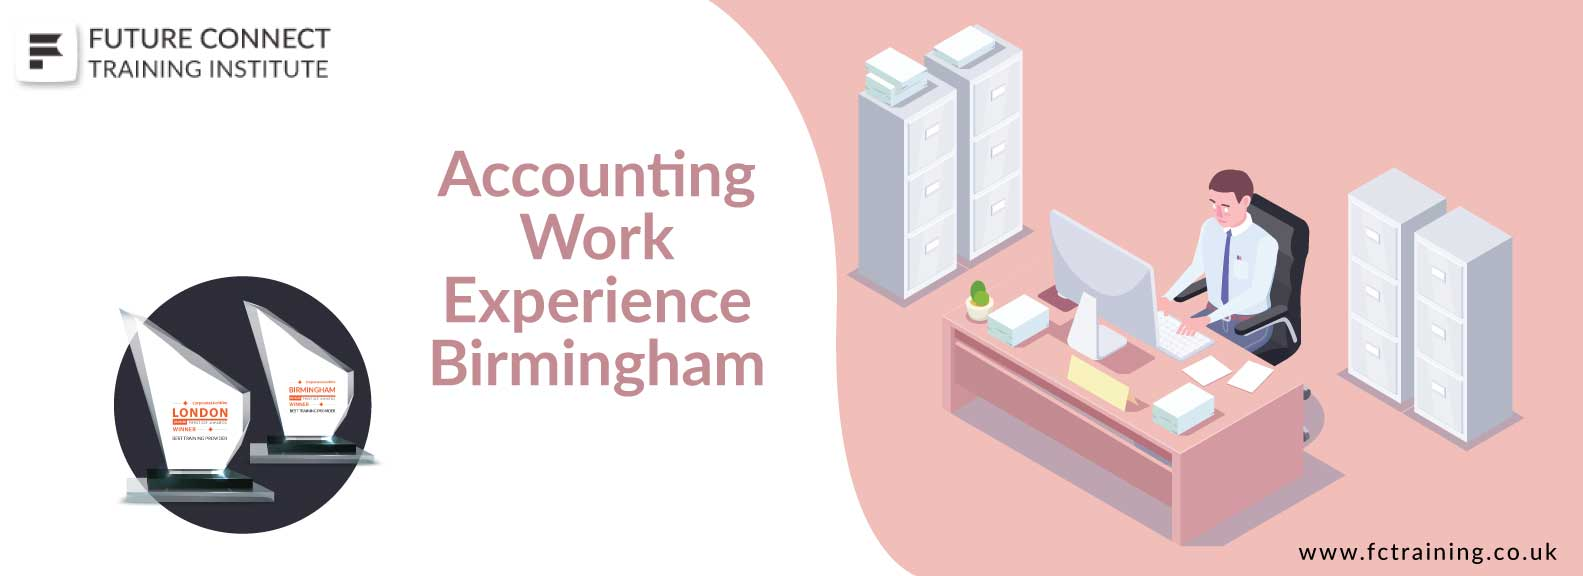 Accounting Work Experience Birmingham